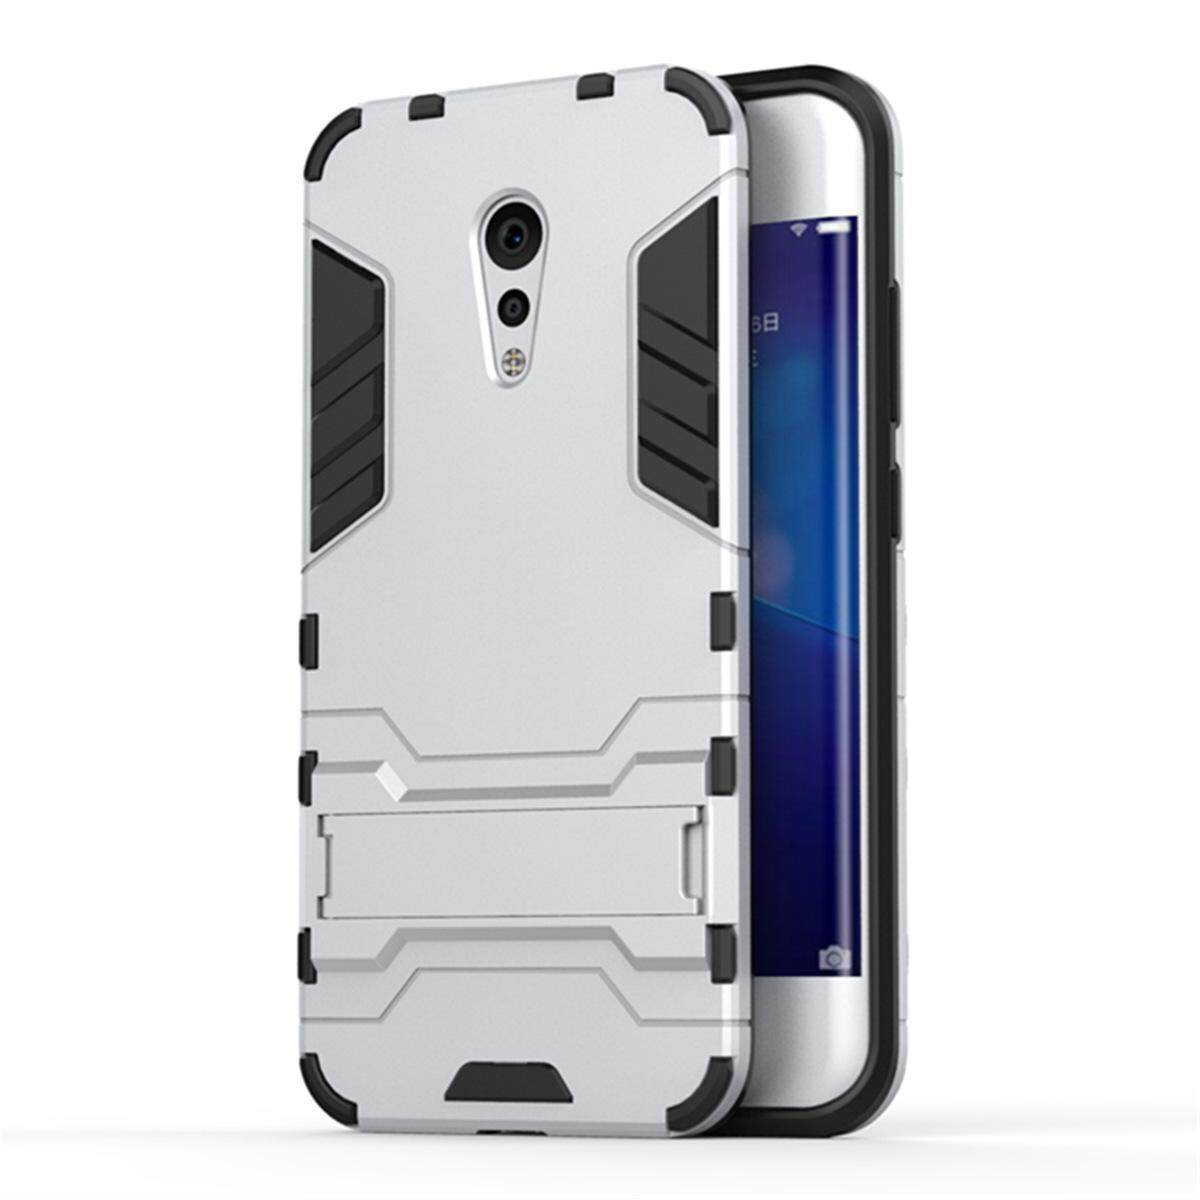 Hình ảnh for Vivo Xplay6 Case 2in1 PC+TPU Hybrid Slim Back Case Ultra Thin Armor Cover, with Kickstand Holder, Glossy, Minimalist, Casual